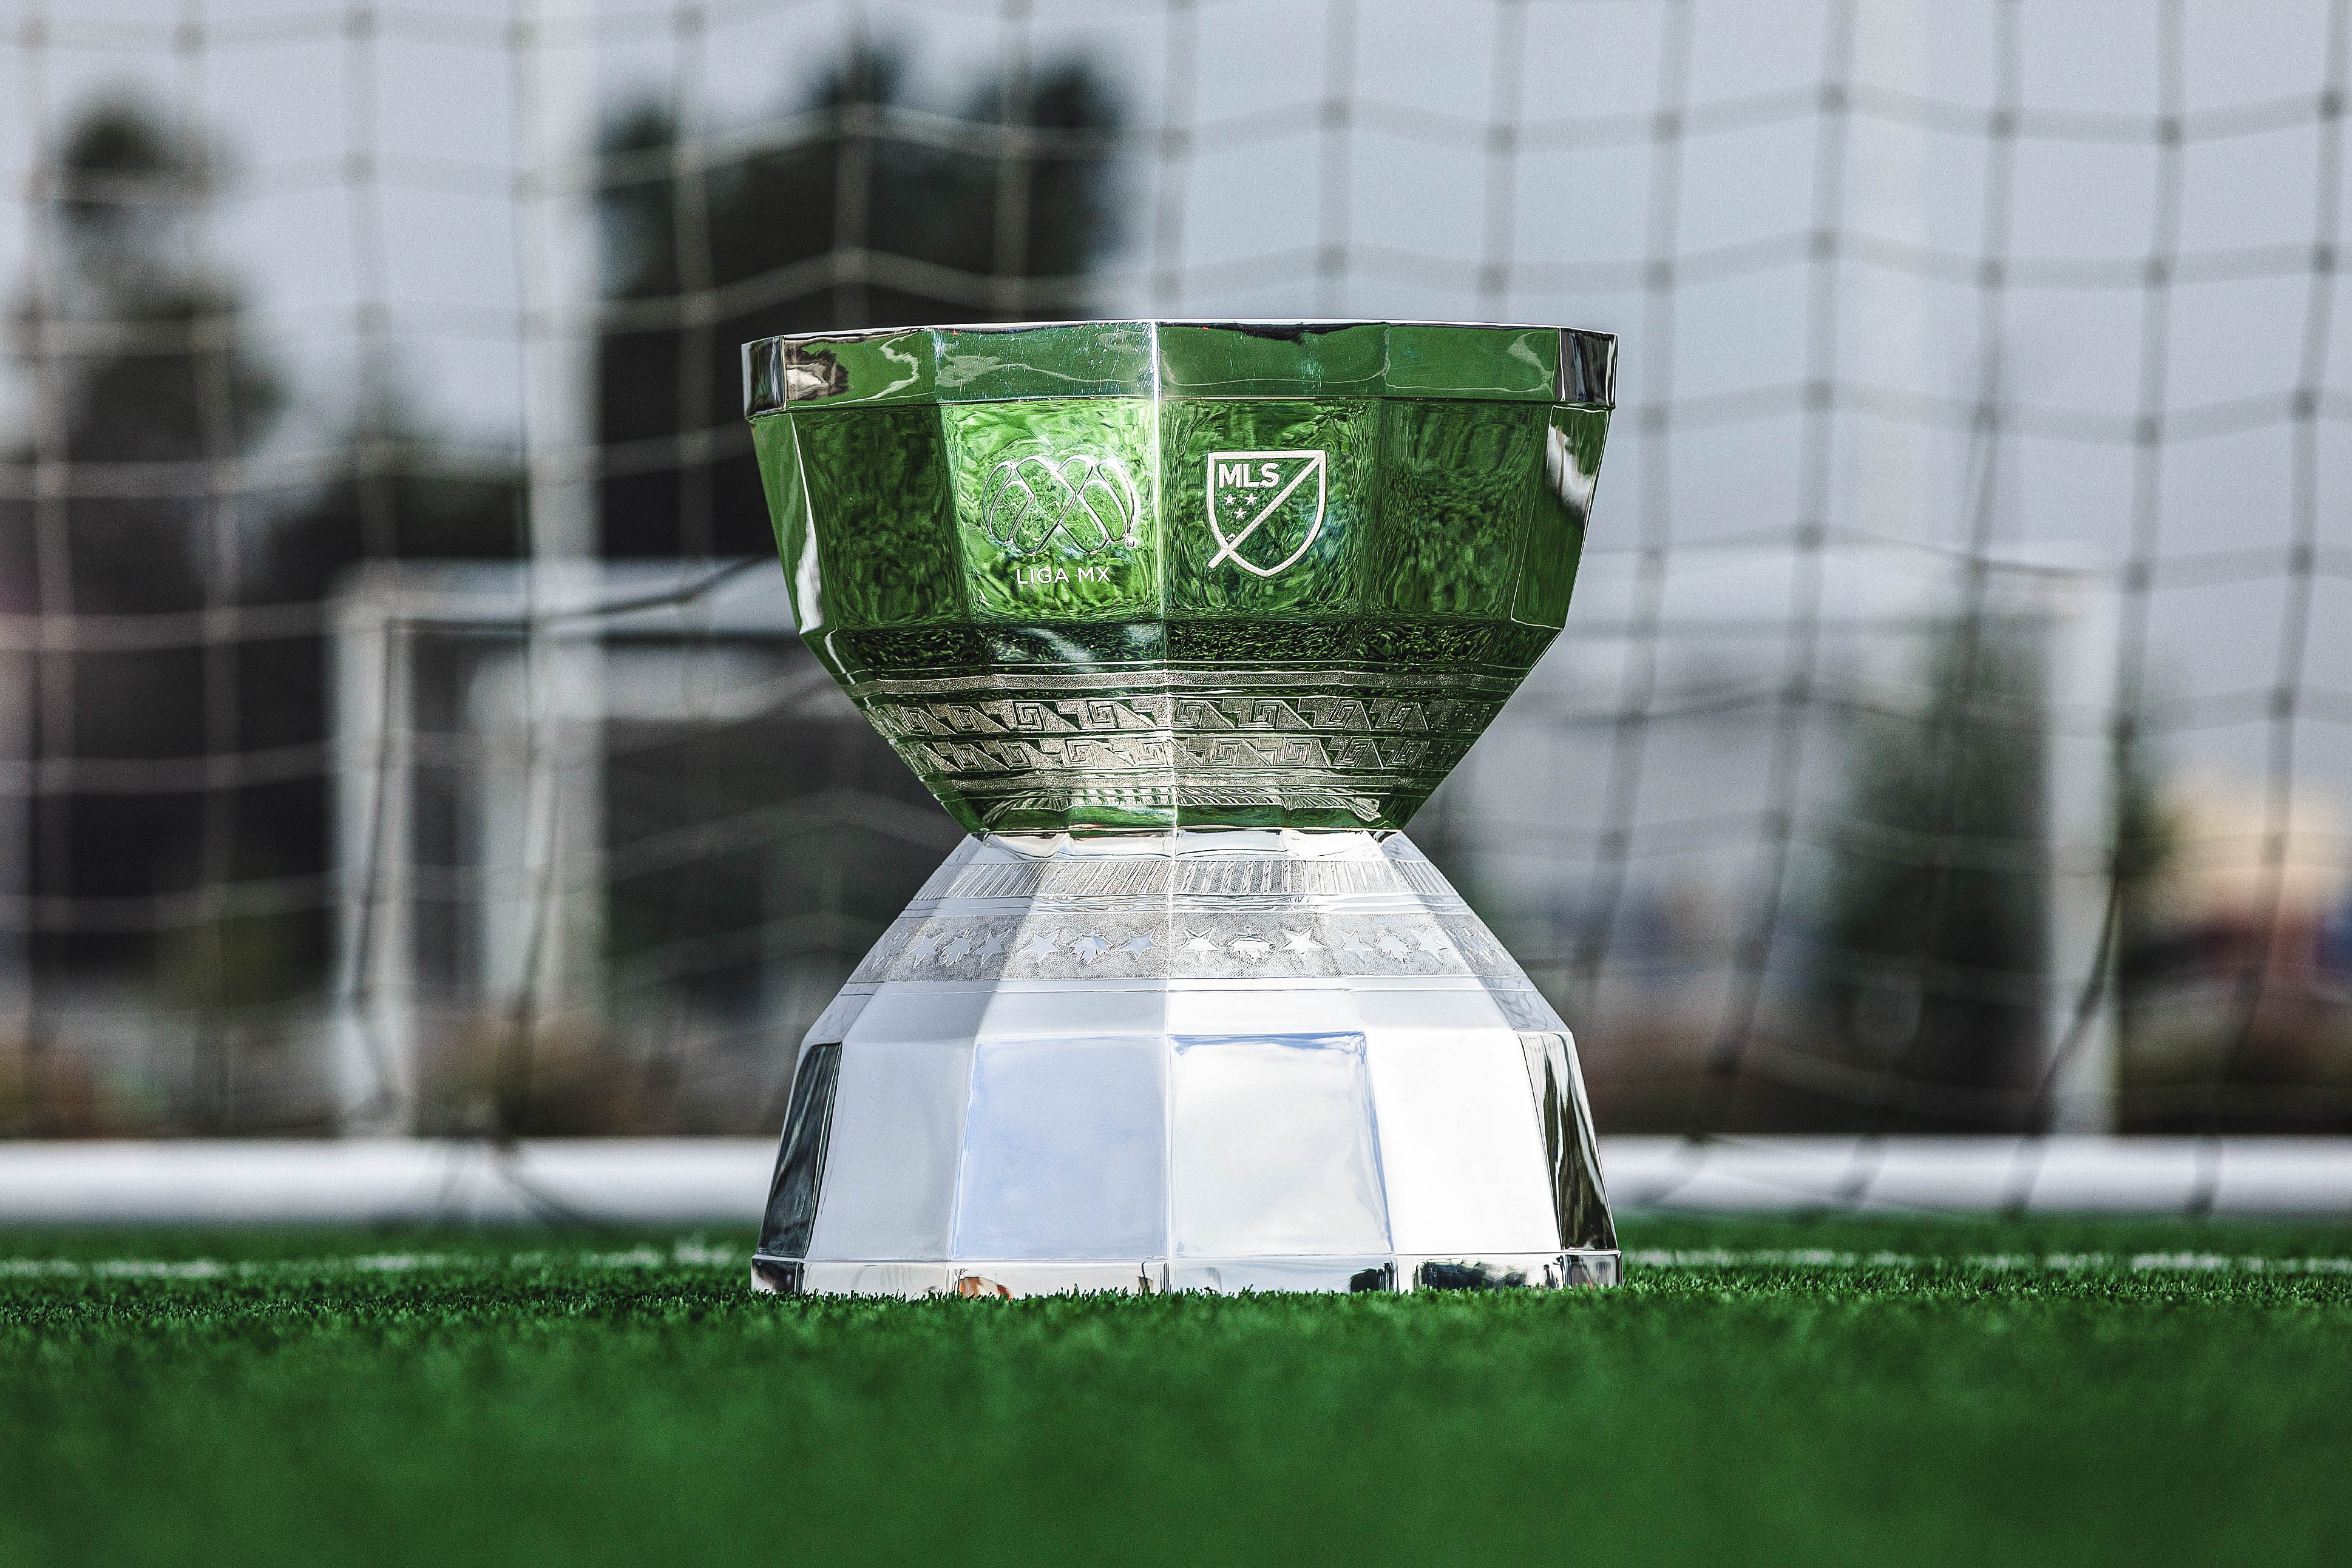 Sounders FC becomes one of four MLS teams to compete in 2021 Leagues Cup   Seattle Sounders